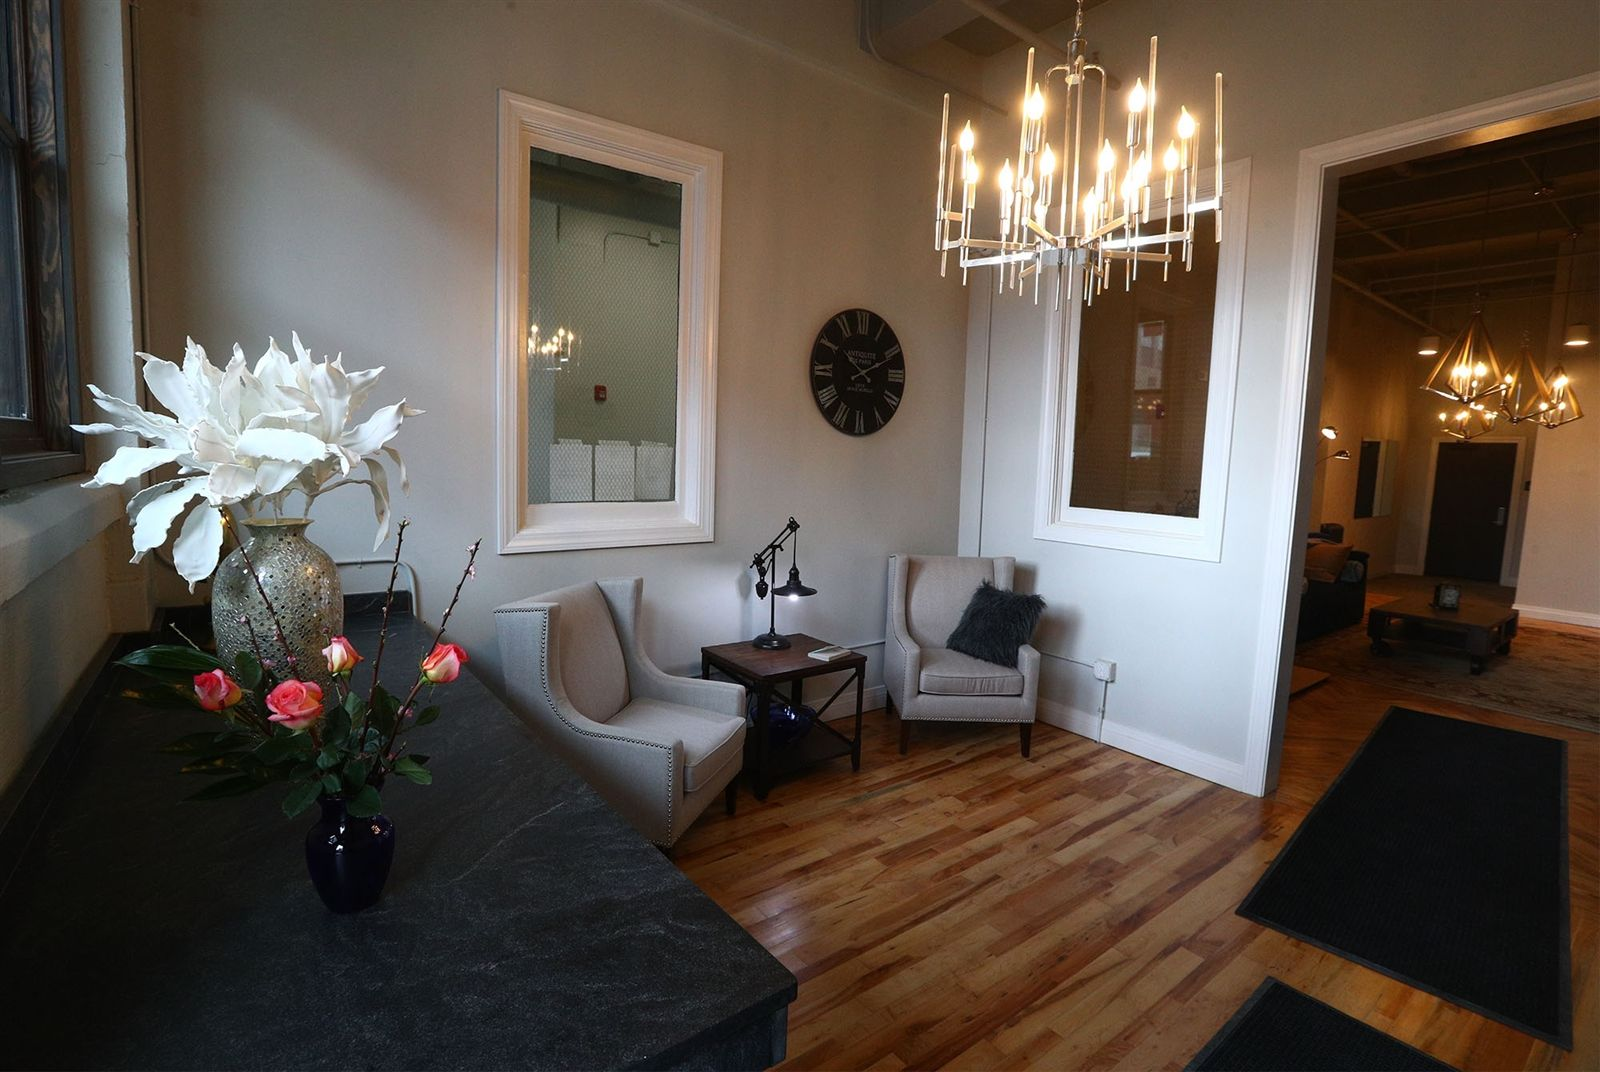 A foyer for the new Alexandre Apartments at 510 Washington St. Owners Amy and Mark Judd named the apartments using their son's middle name.